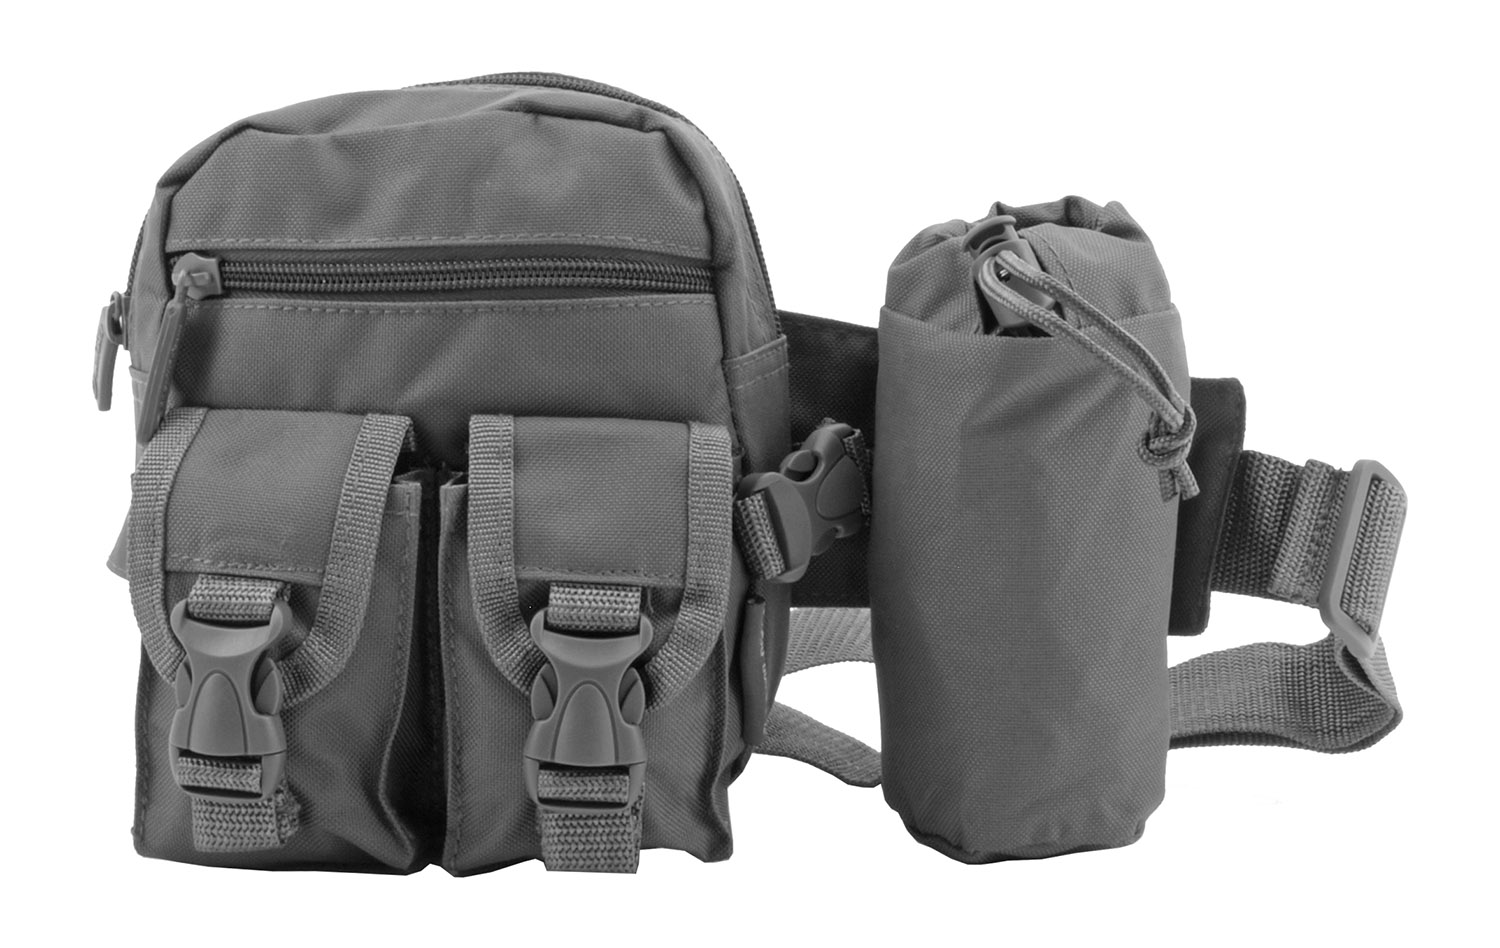 Rock Climbing Trail Hiking Tactical Specific Waist Hip Bag with Water Carrier - Grey